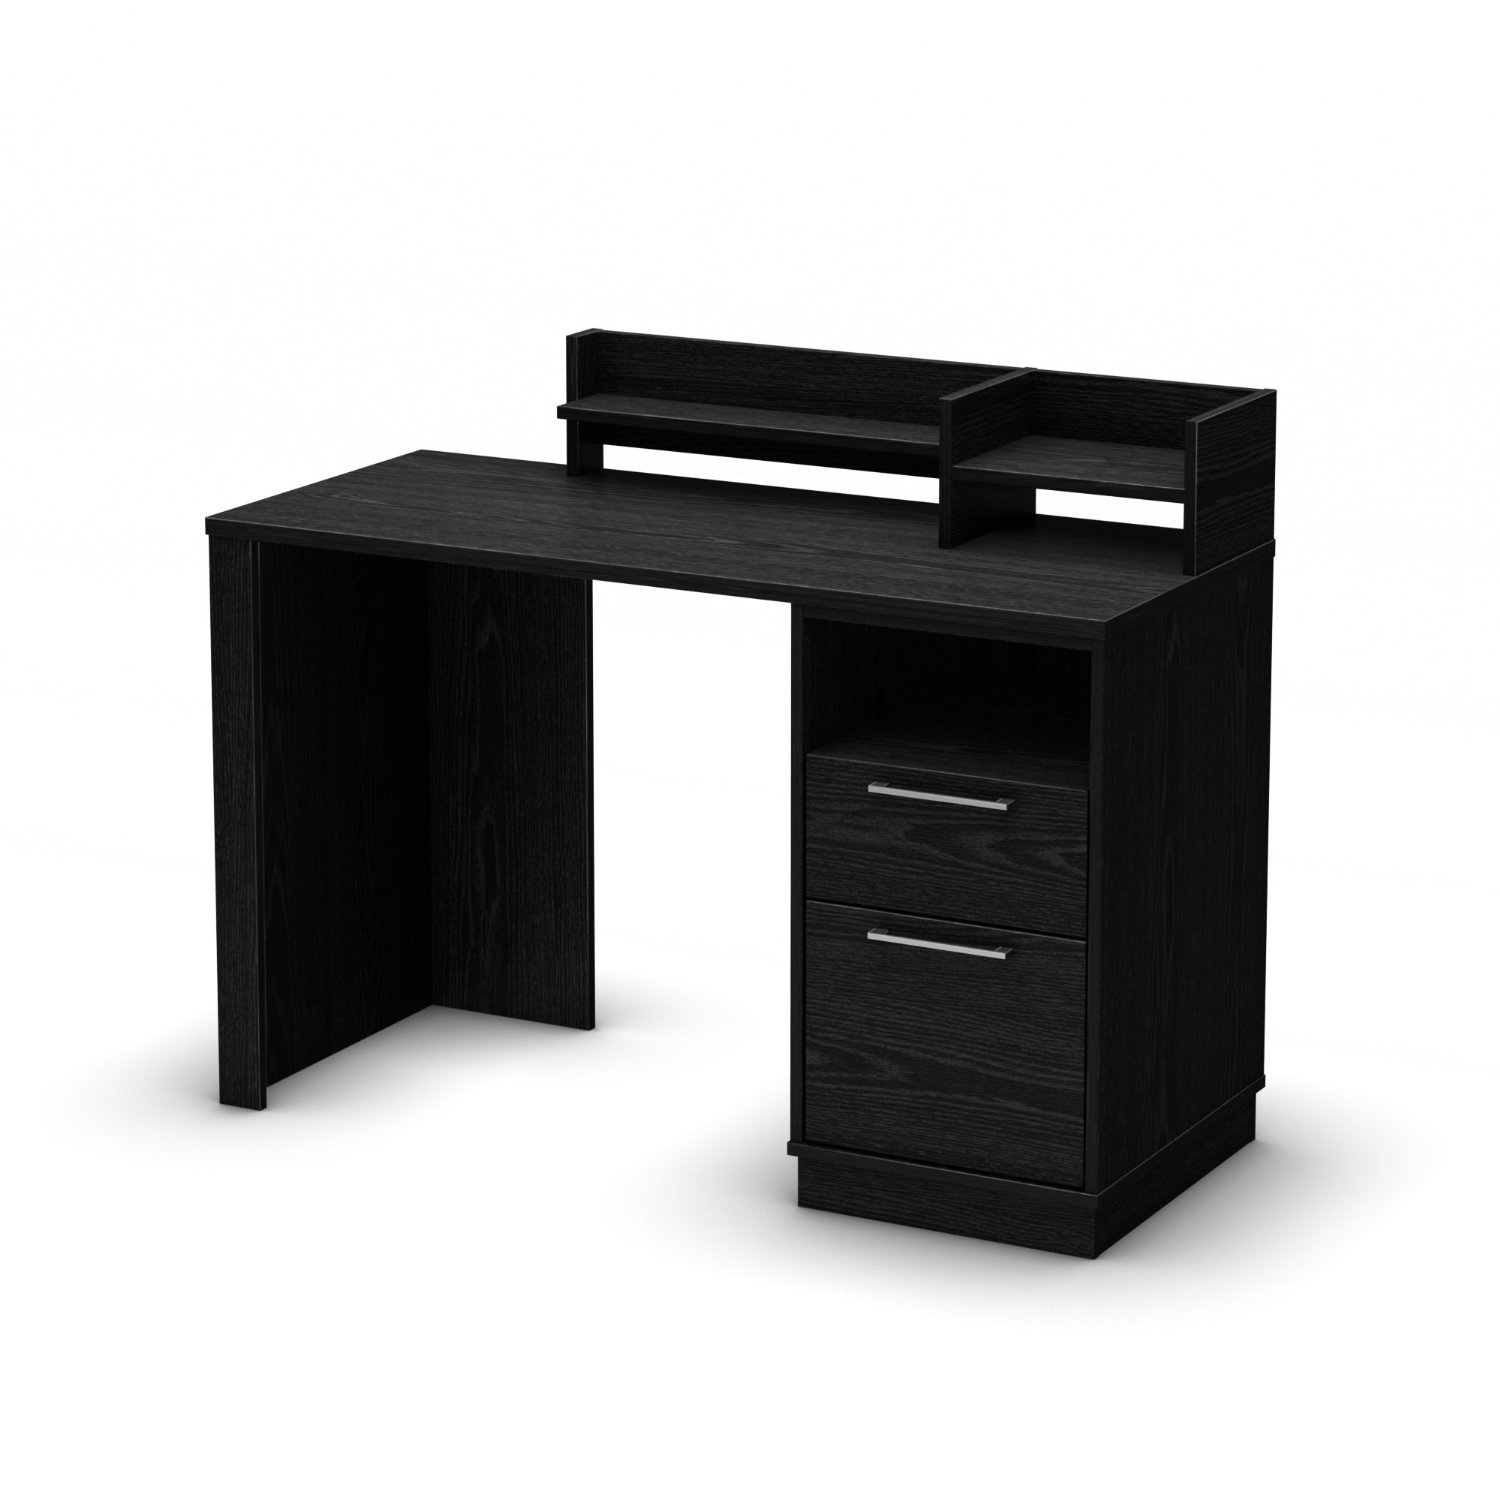 Simple Design Of The Black Desk With Drawers With So Many Drawers With Silver Knob Ideas